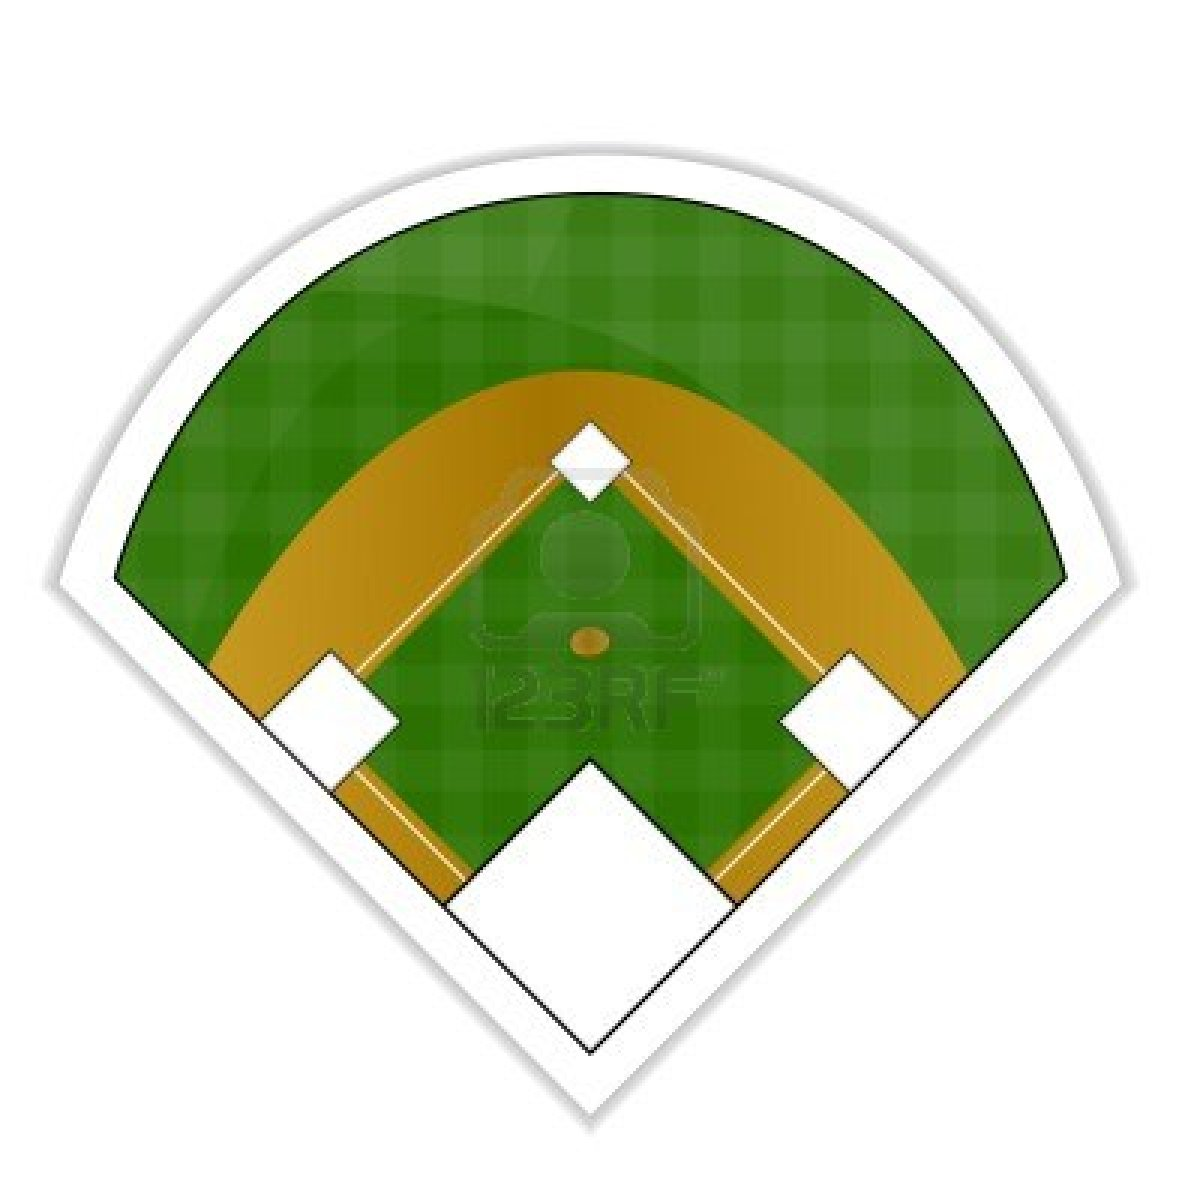 Baseball diamond images clipart graphic black and white download Free Baseball Field, Download Free Clip Art, Free Clip Art on ... graphic black and white download